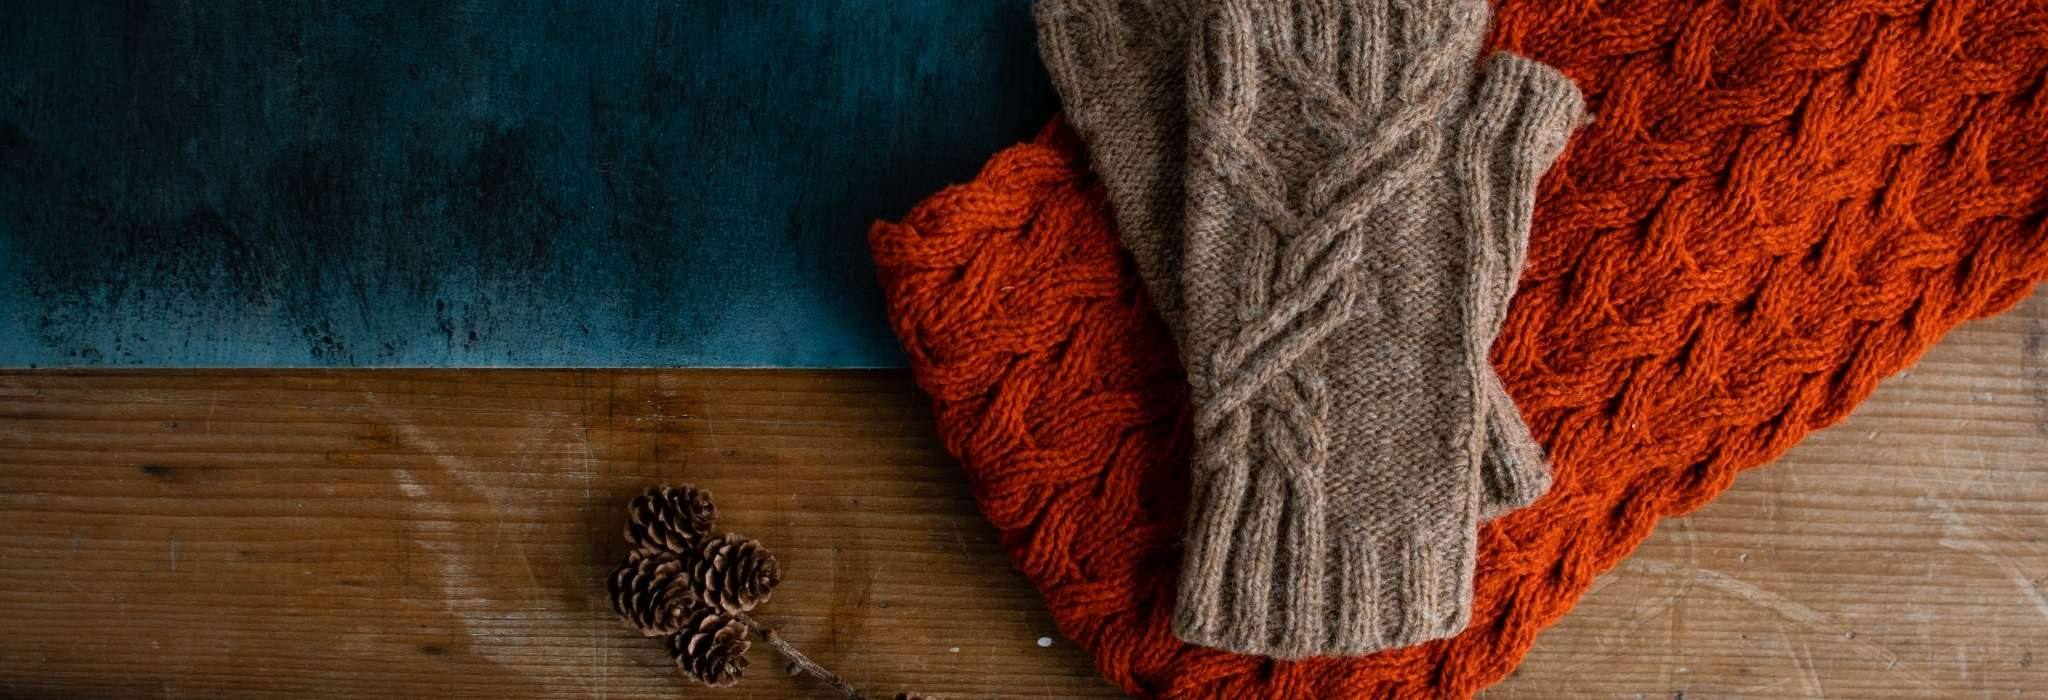 A deep orange cabled cowl lies flat on a wooden surface, slightly overlapping a folded piece of teal fabric. A pair of cabled brown fingerless mitts are arranged on top.